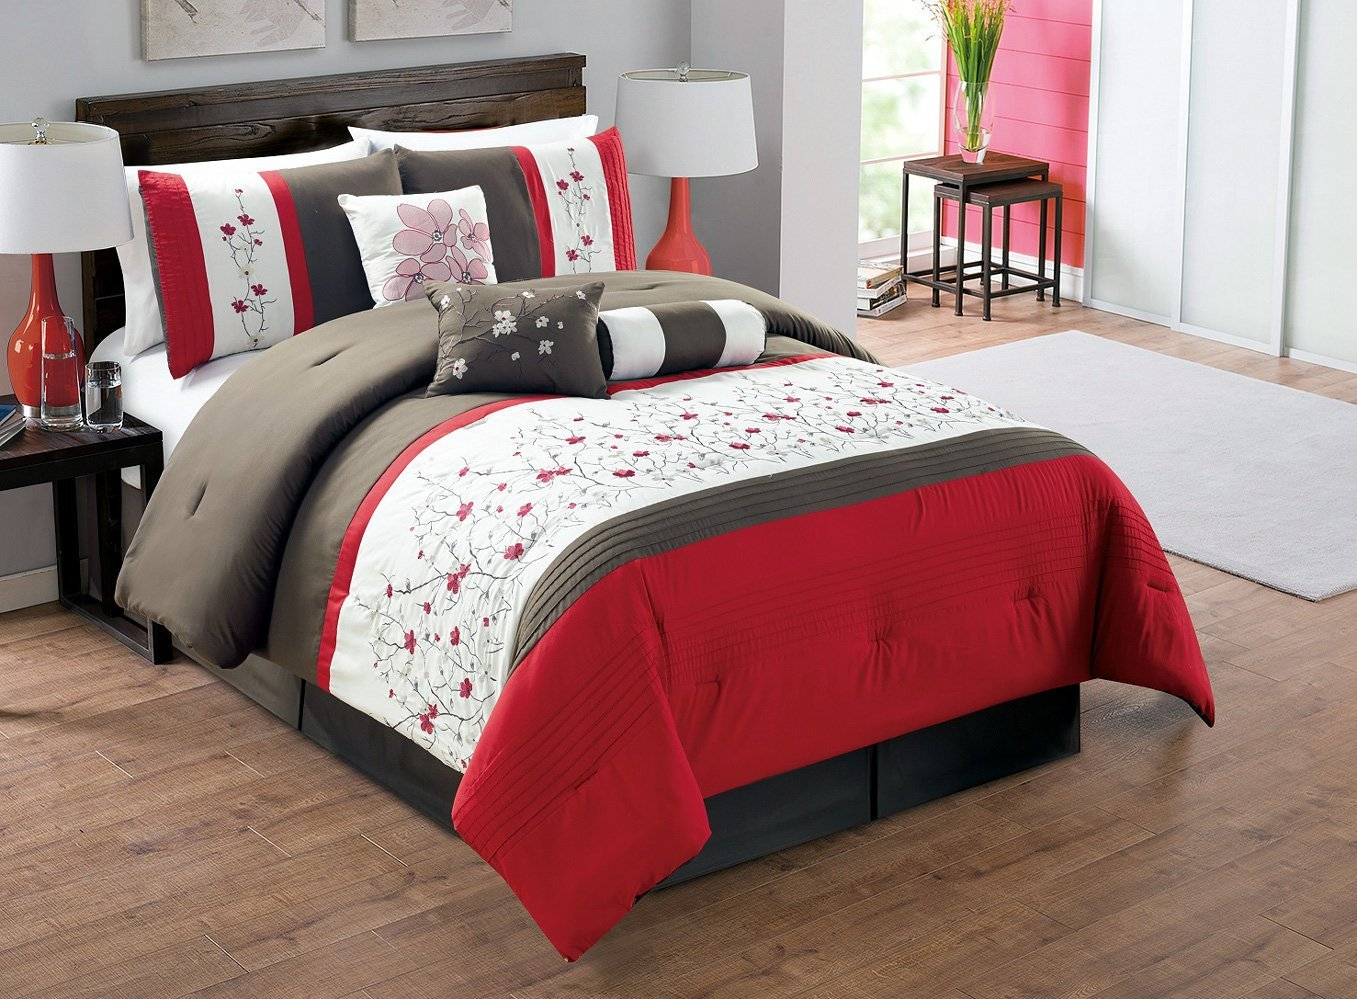 sale comforter clearance bedroom floral and bedding extraordinary red set stunning jcpenney decoration king cheap cream in ideas s for sets bed rustic themed